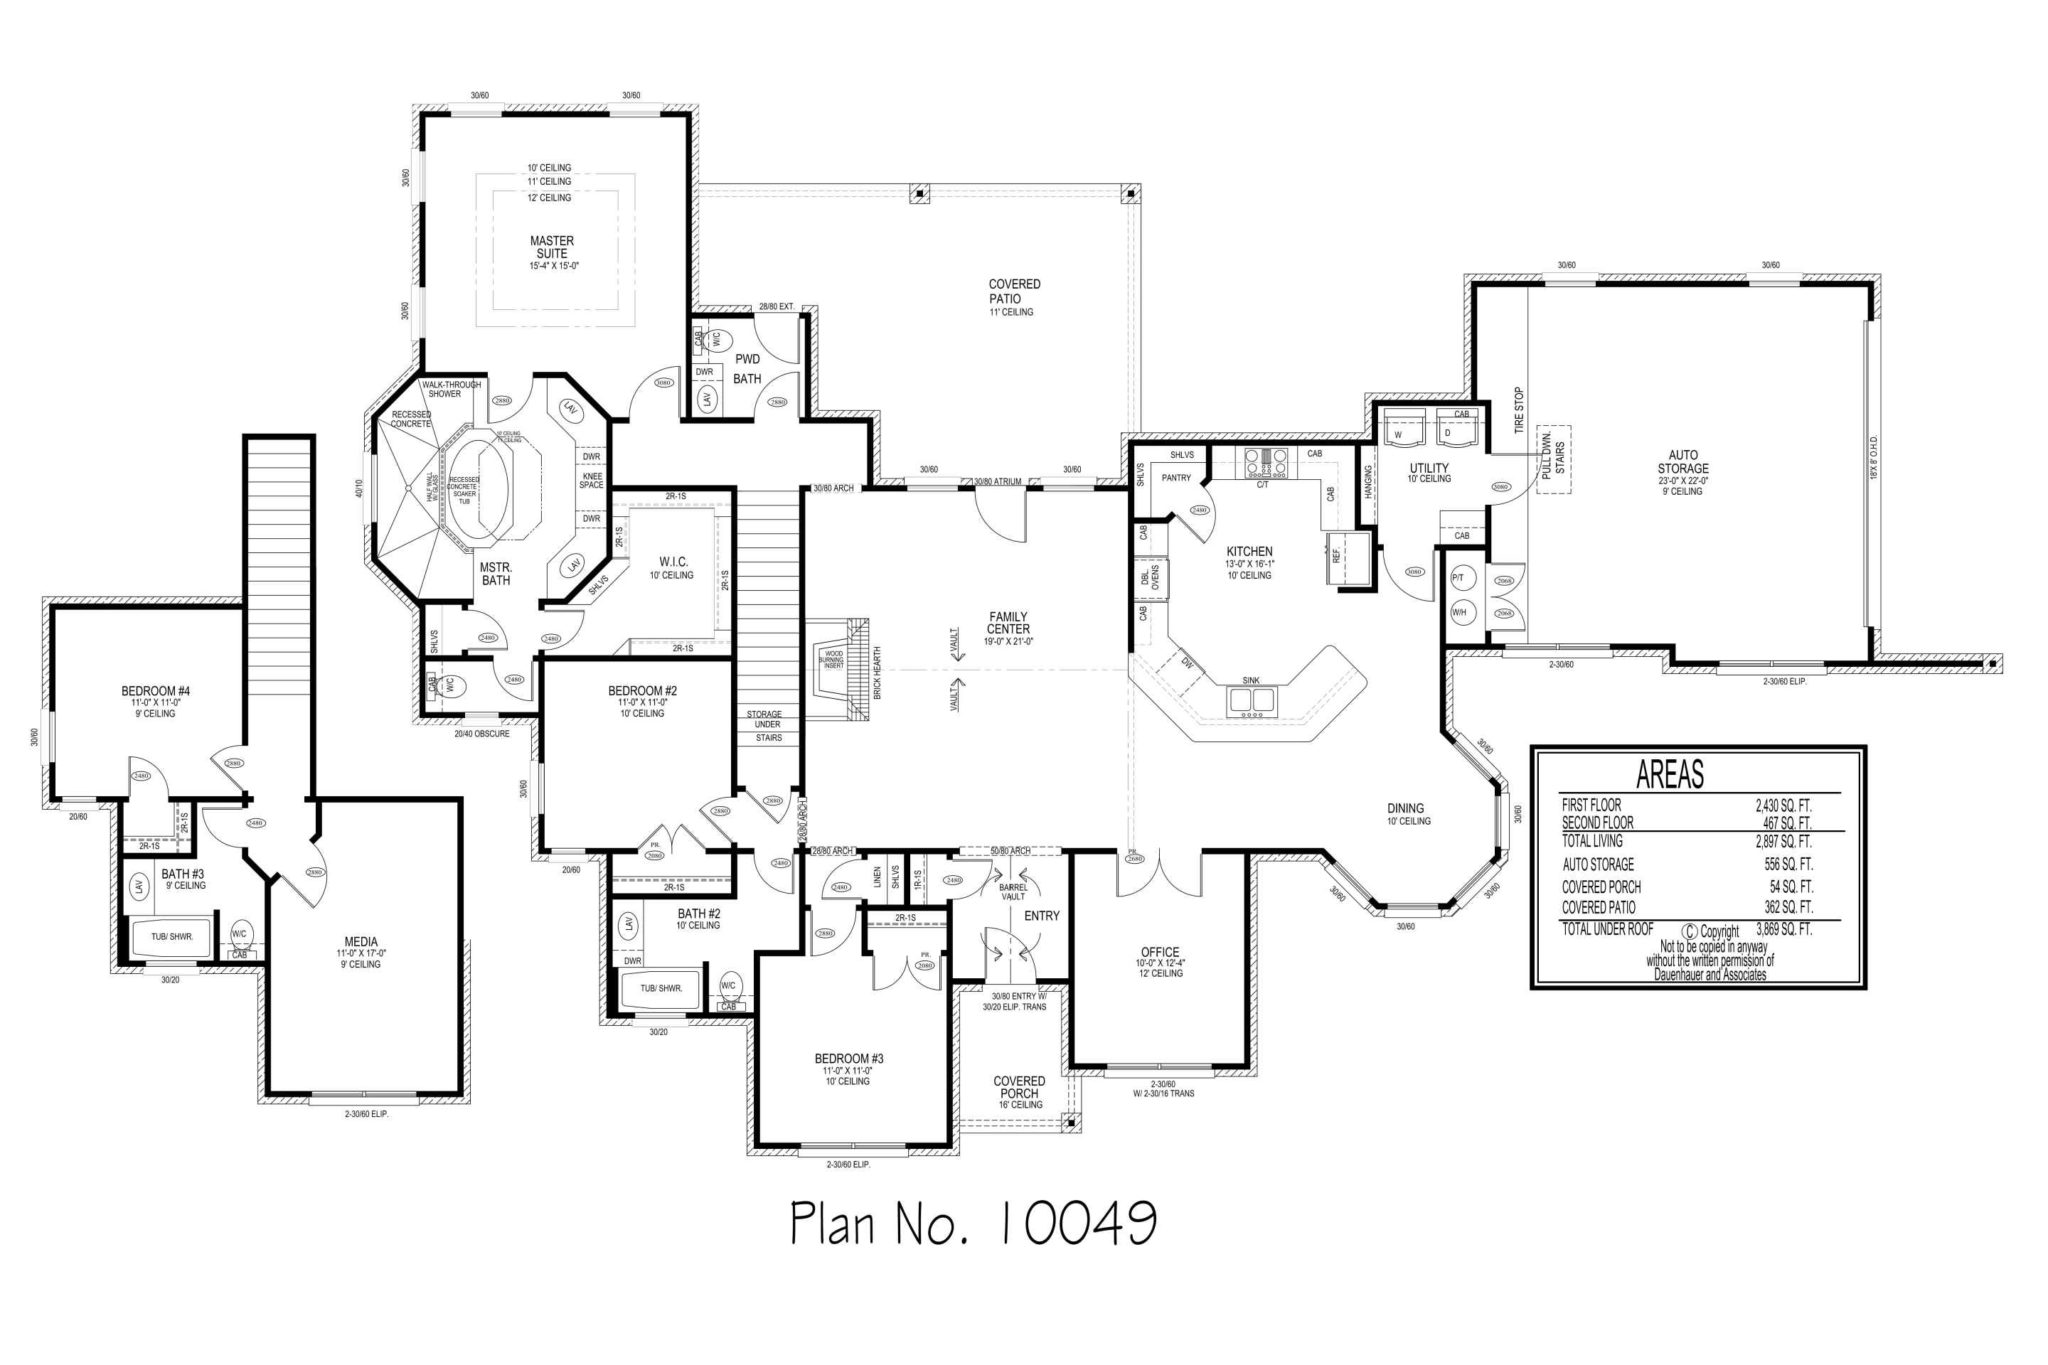 100 100 floor plan for 3000 the hacienda iii 41764a for 3000 square foot modular homes